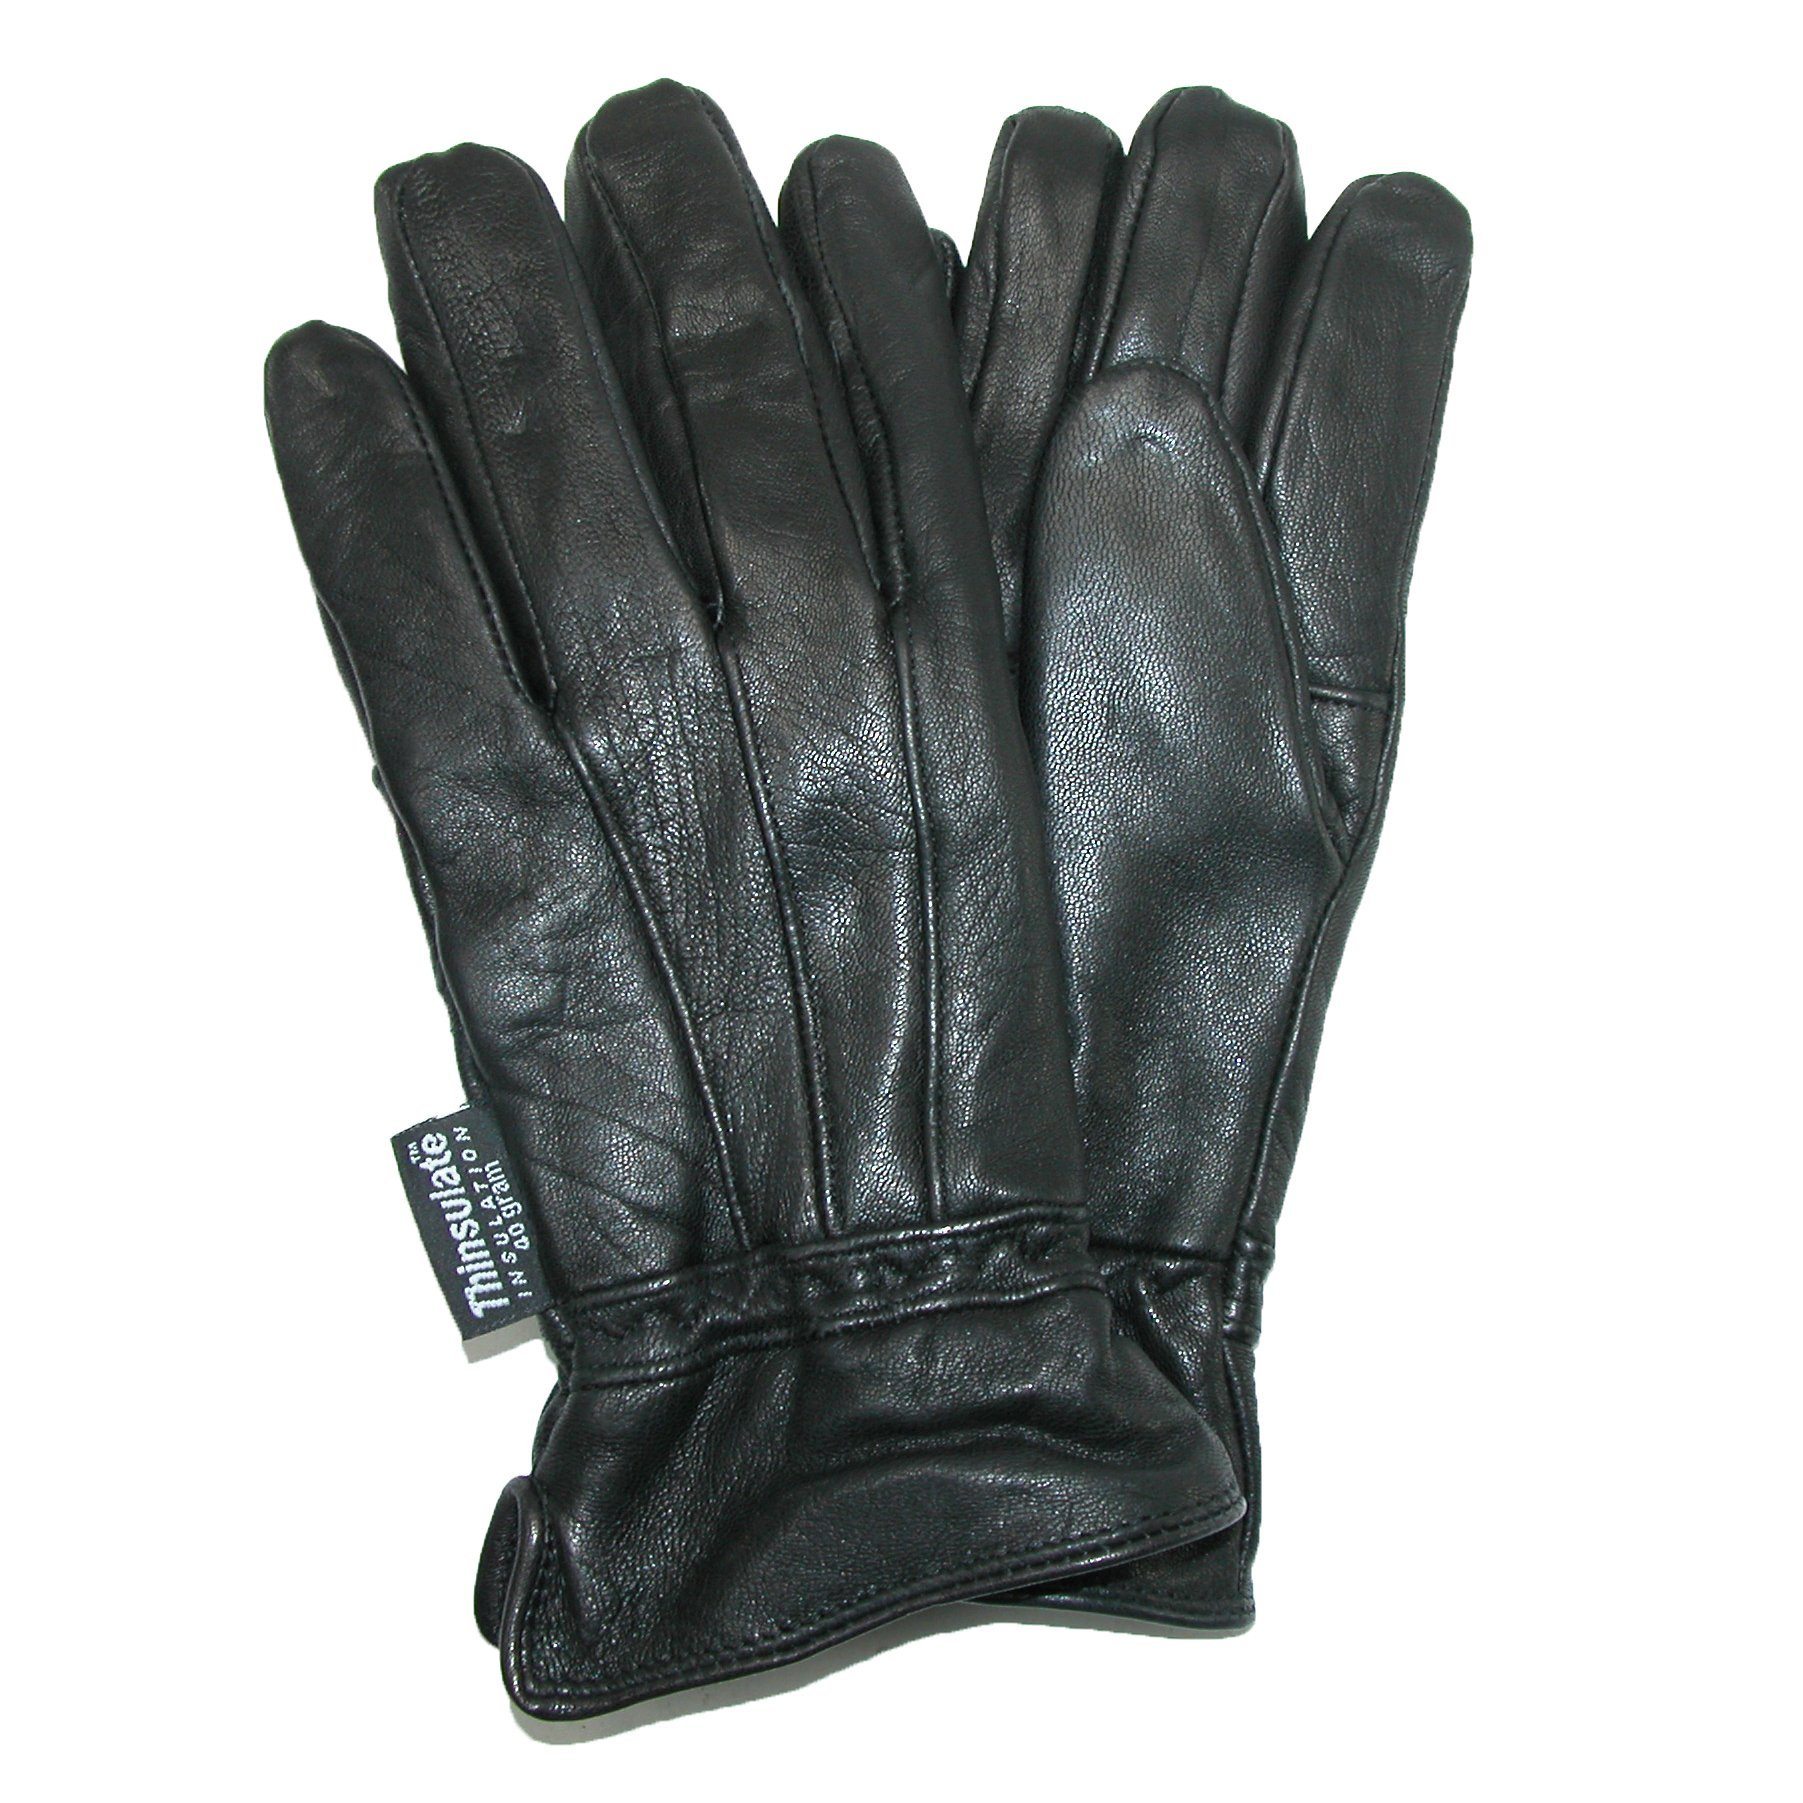 Dorfman Pacific Womens Lambskin Leather Thinsulate Lined Driving Gloves,Small / Medium,Black